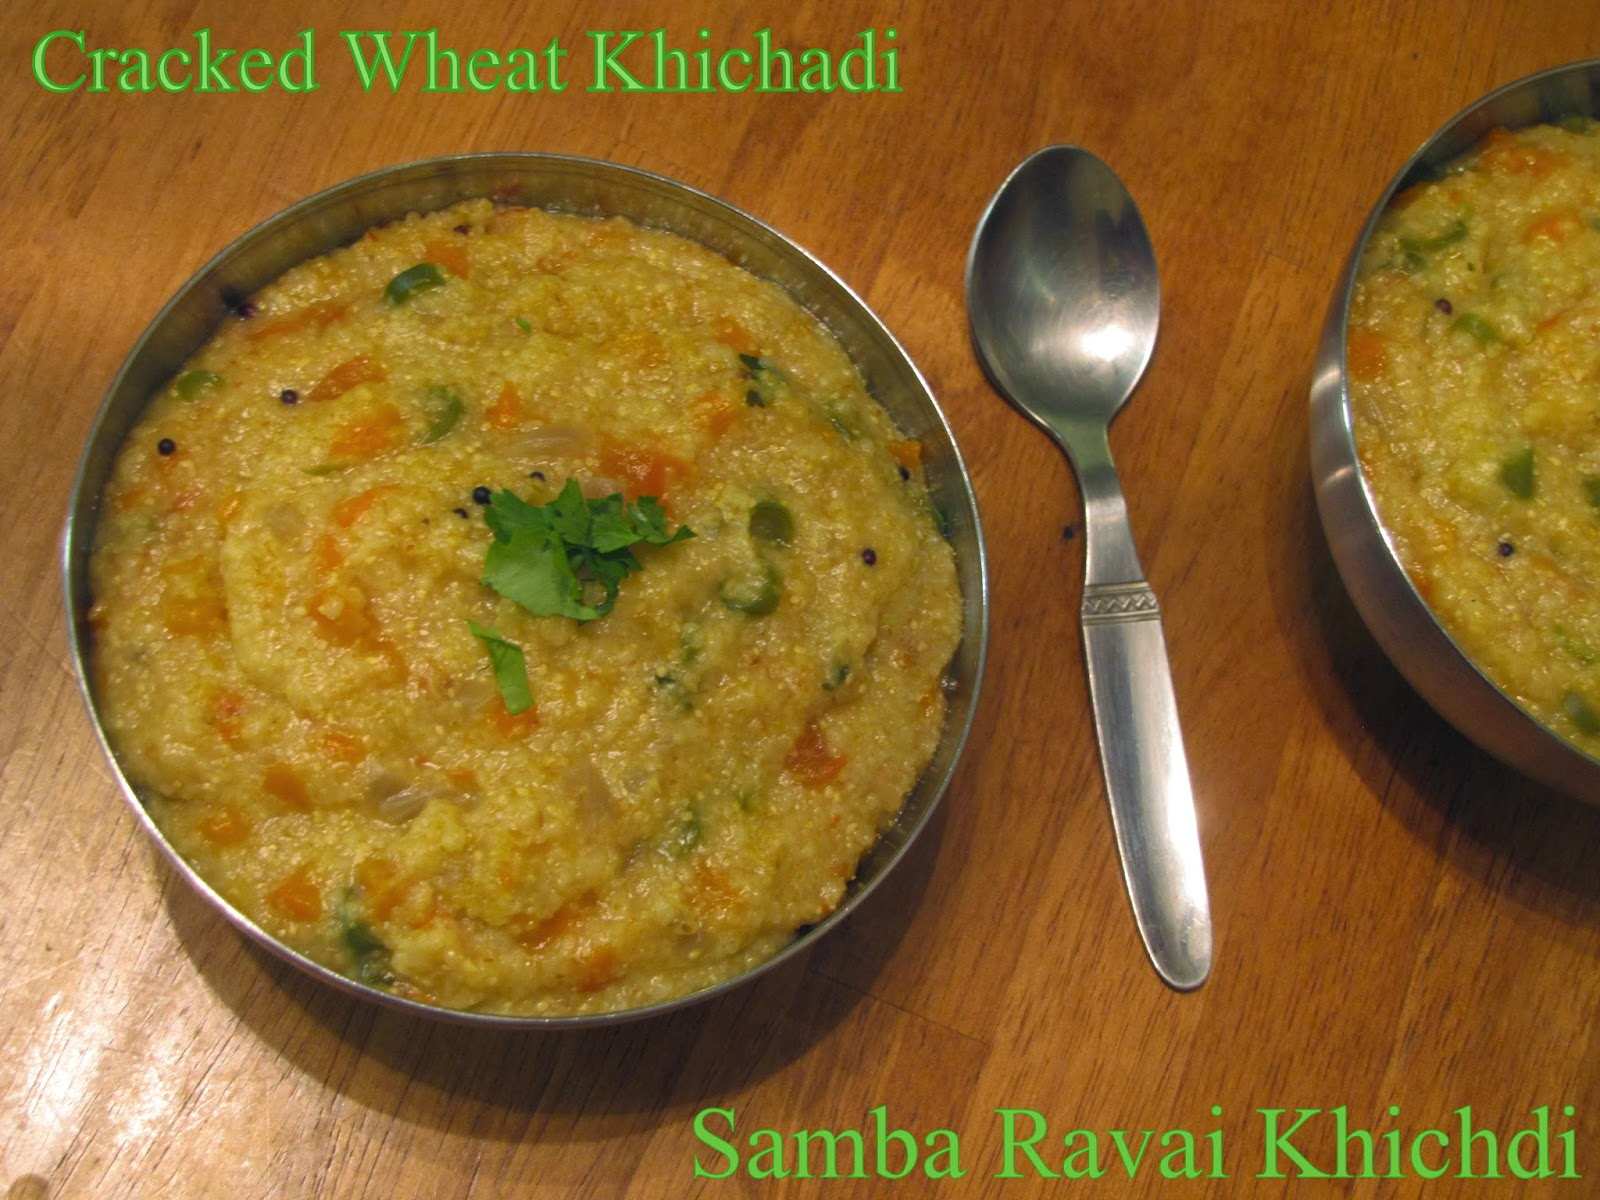 Cracked Wheat Kichadi